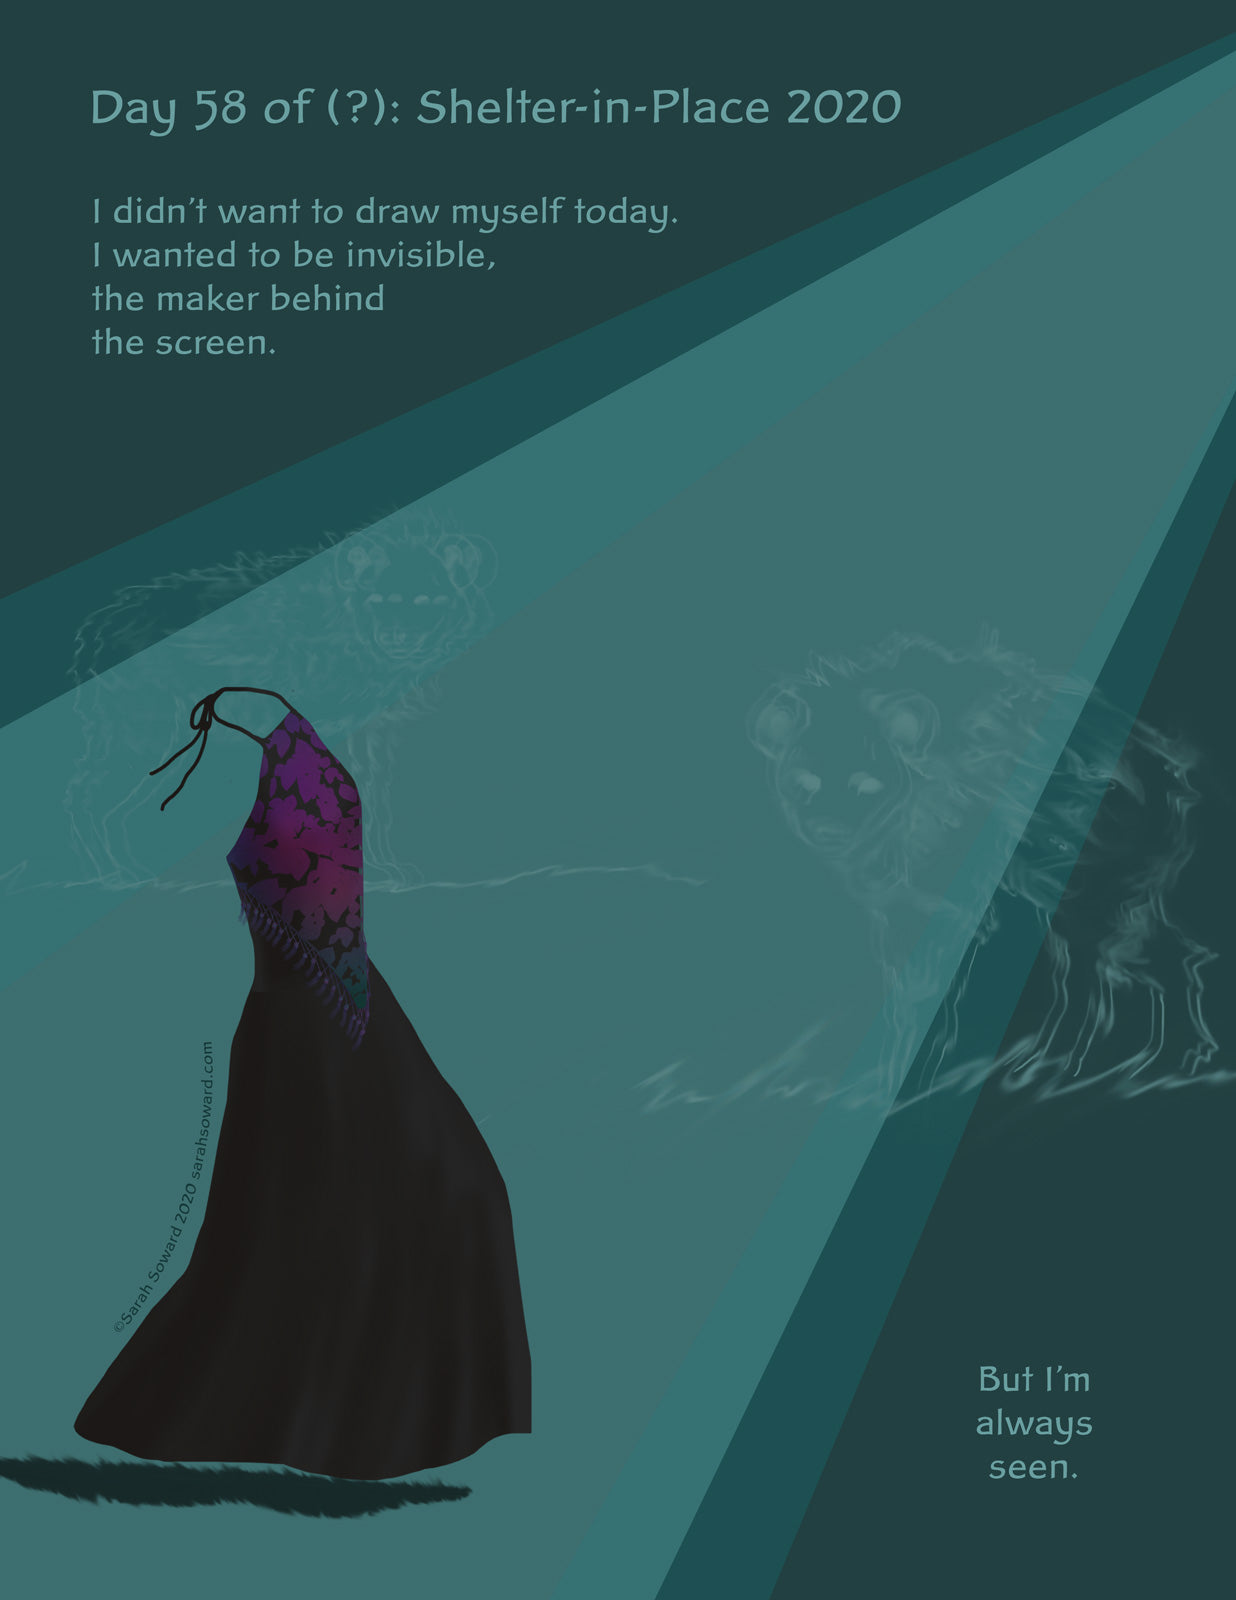 A dress floats by in a spotlight, looking like it's worn by an invisible woman. It's floating past hyenas. The text on the image reads  I didn't want to draw myself today.I wanted to be invisible,the maker behind the screen. But I'm always seen.